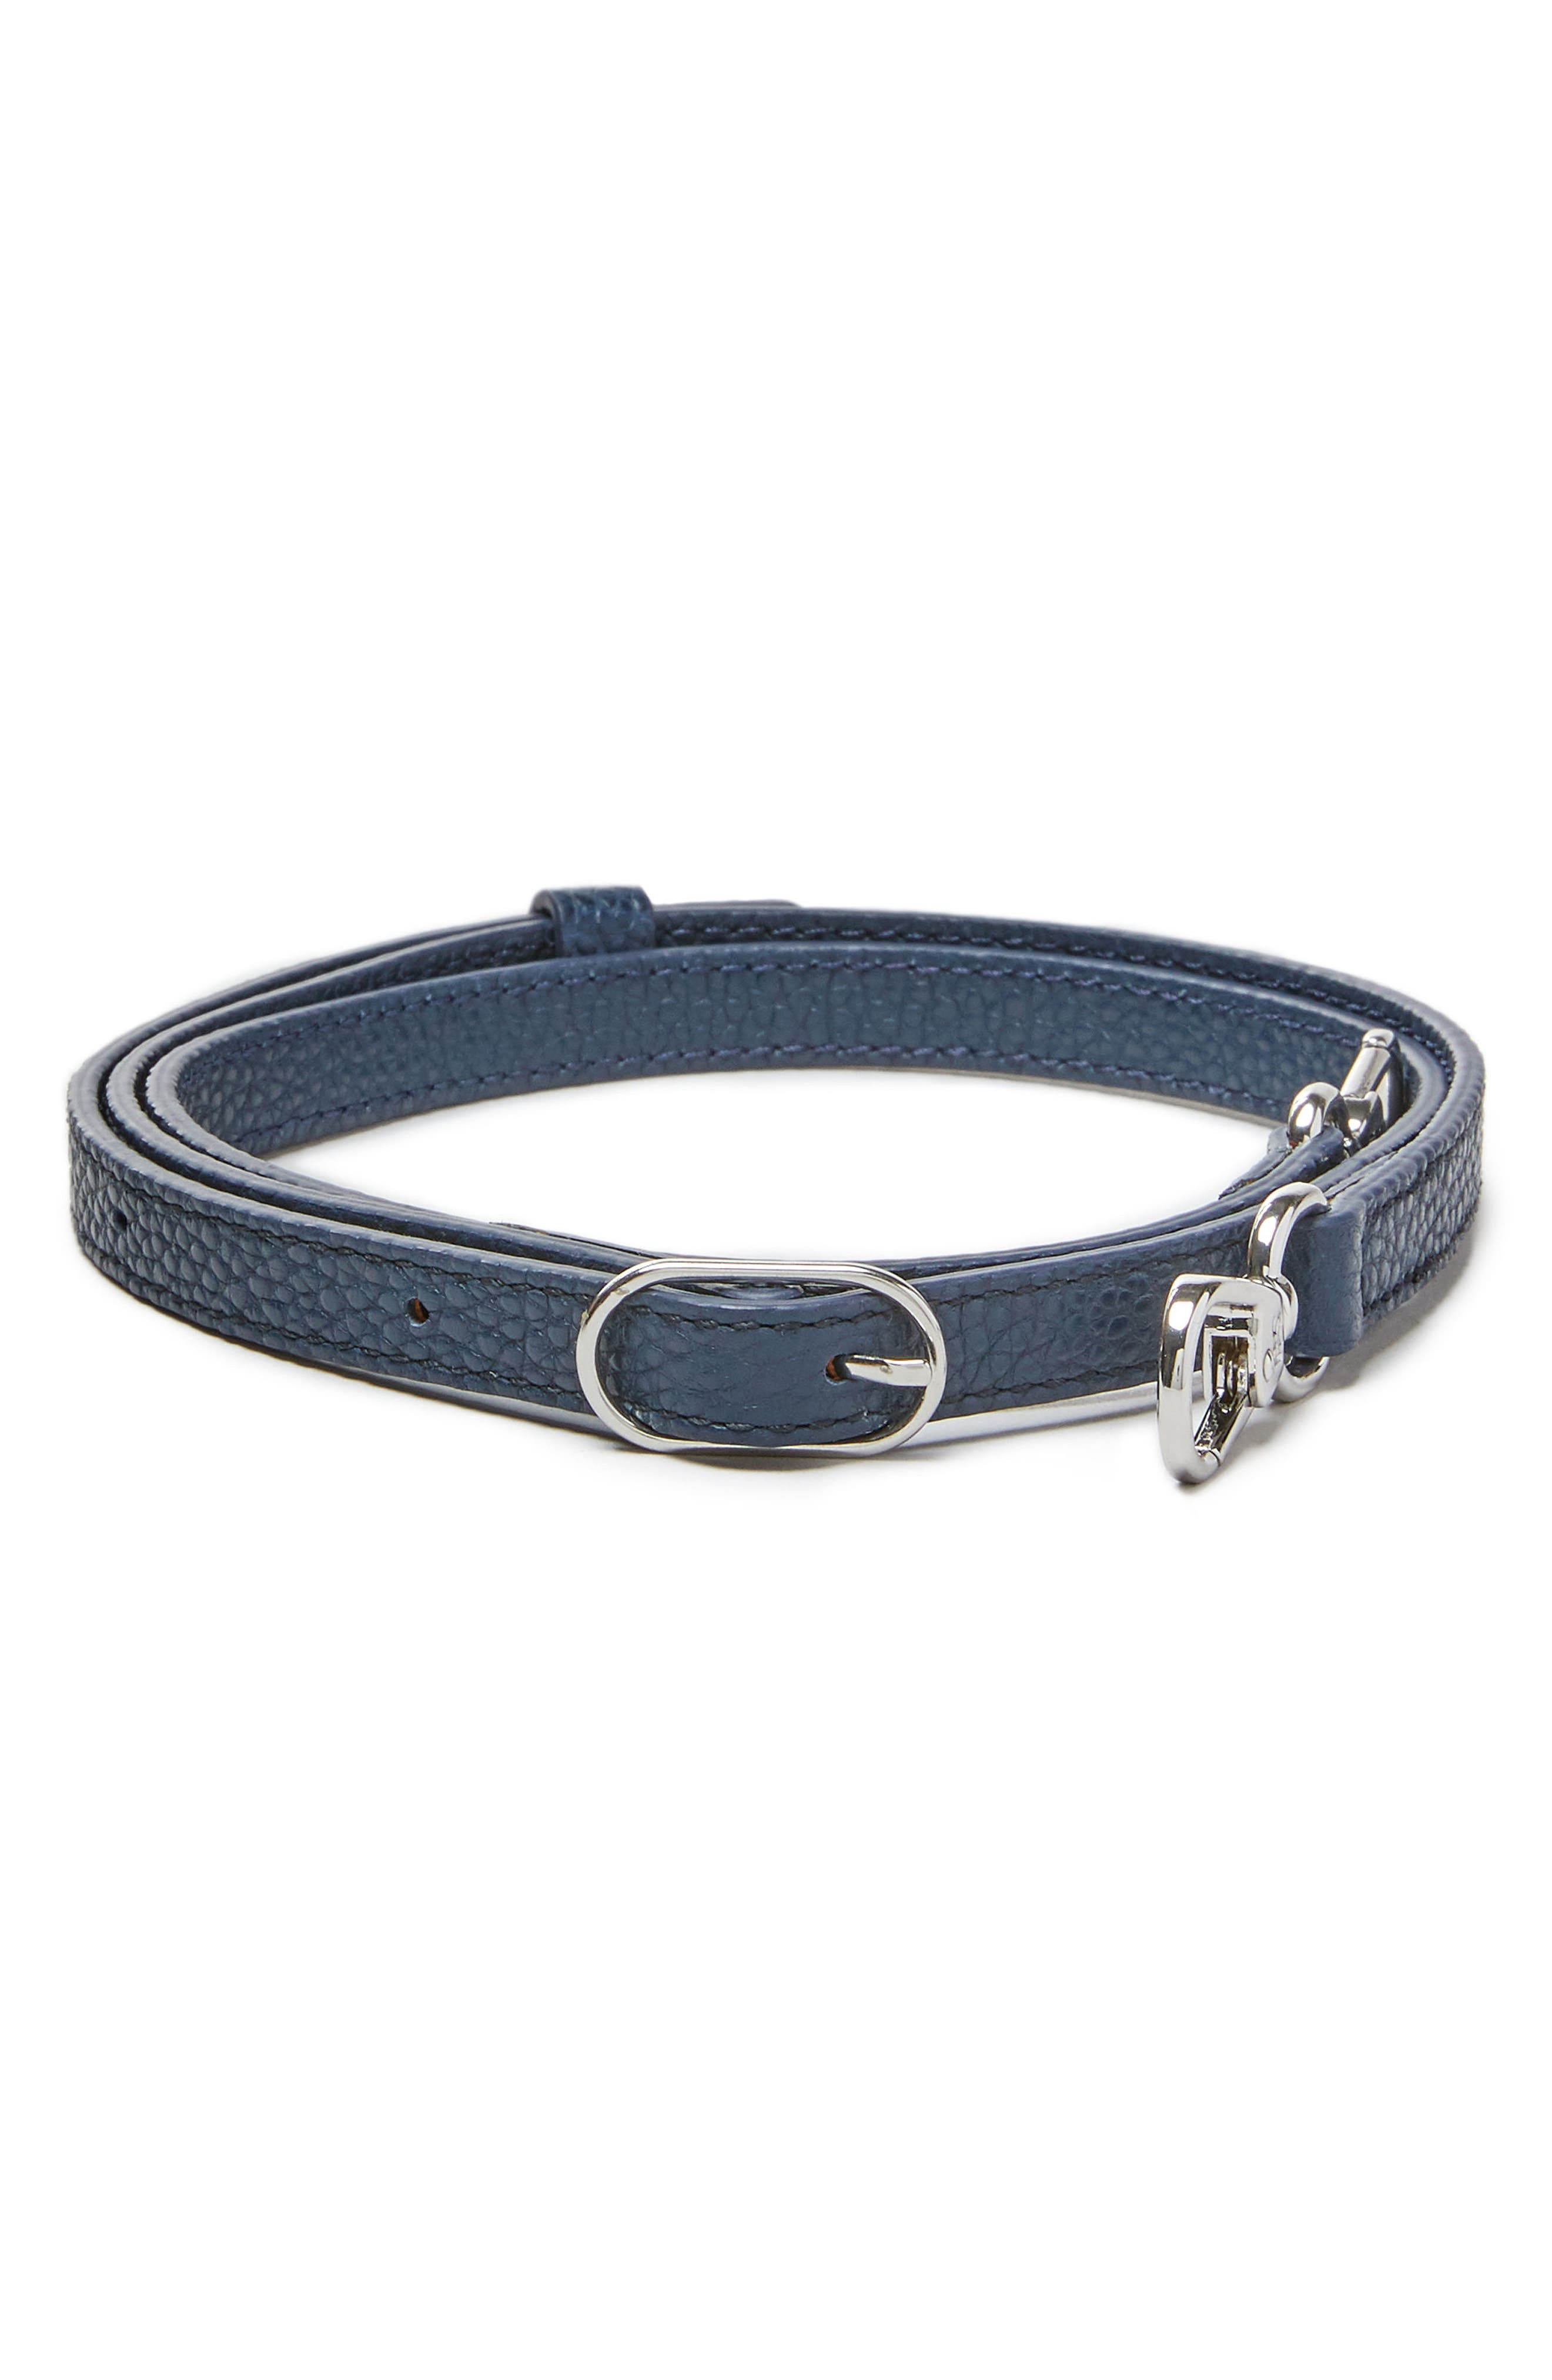 Leather Fanny Strap,                         Main,                         color, Pebbled Oxford